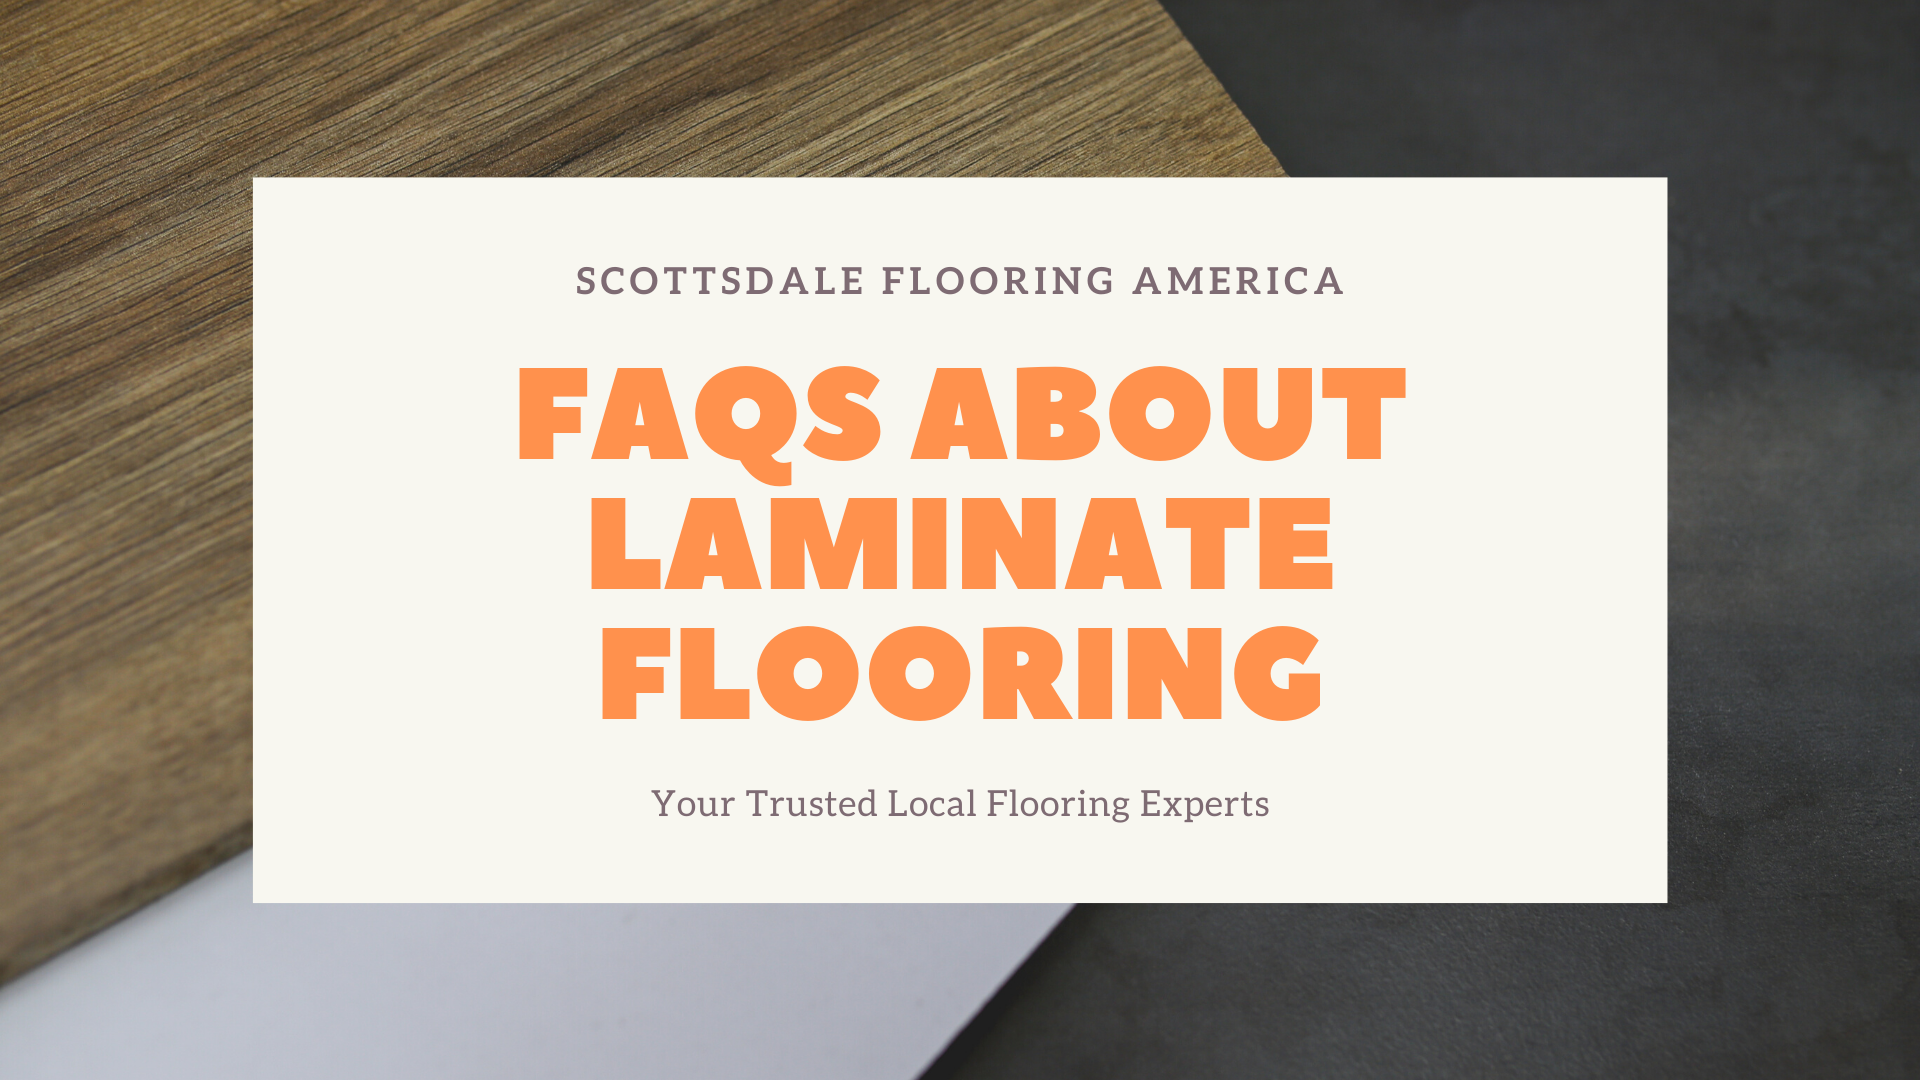 FAQS ABOUT LAMINATE FLOORING